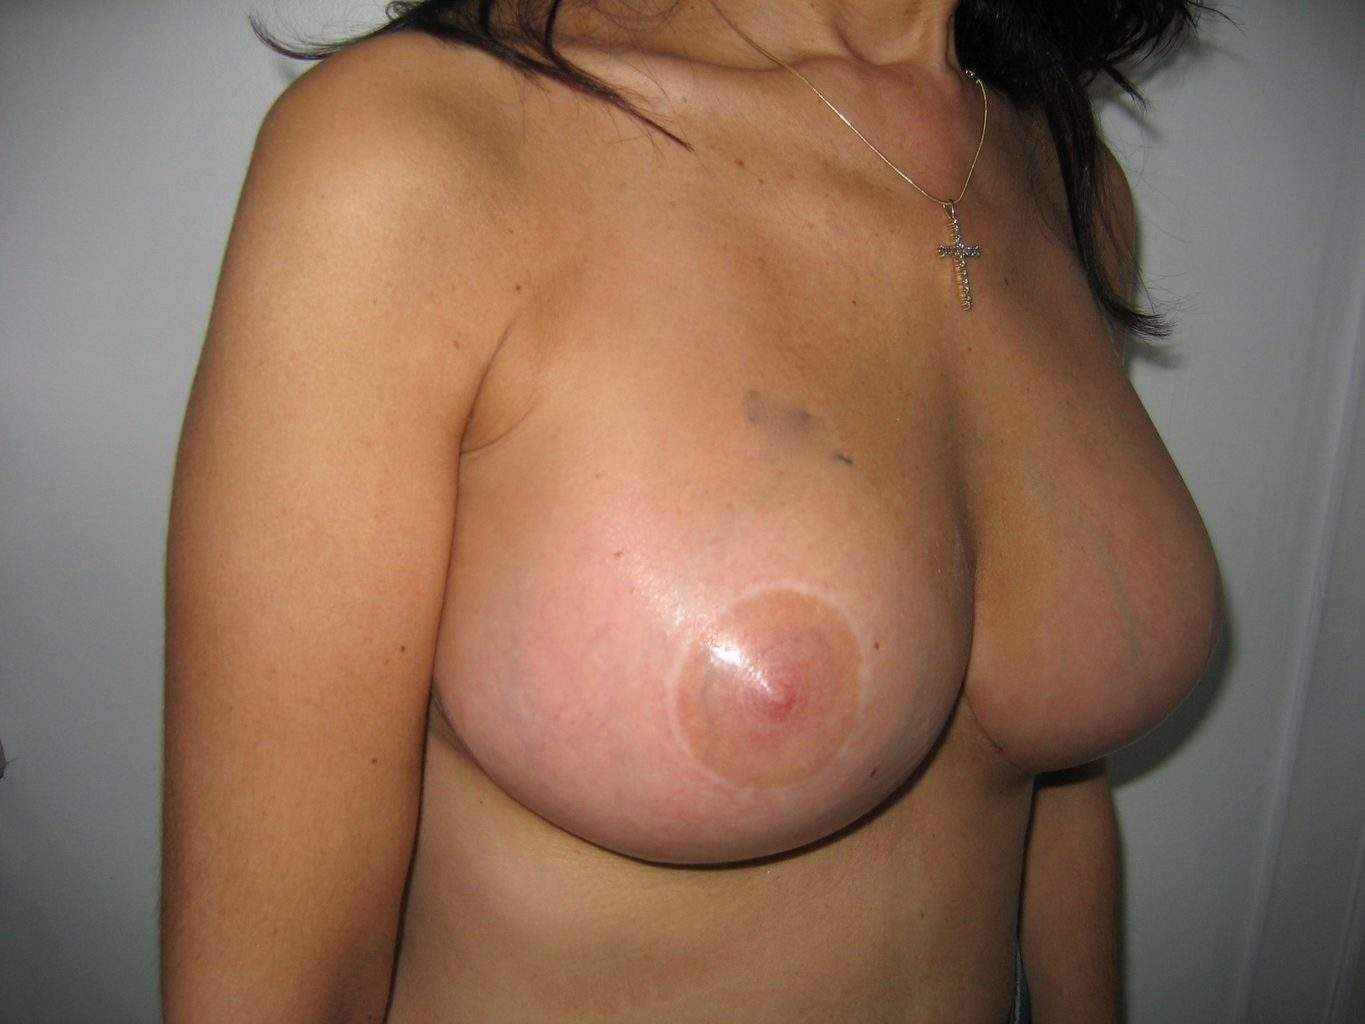 image of beautiful Breast following Lift Mastopexy + Implant Rhode Island Female Plastic Surgeon